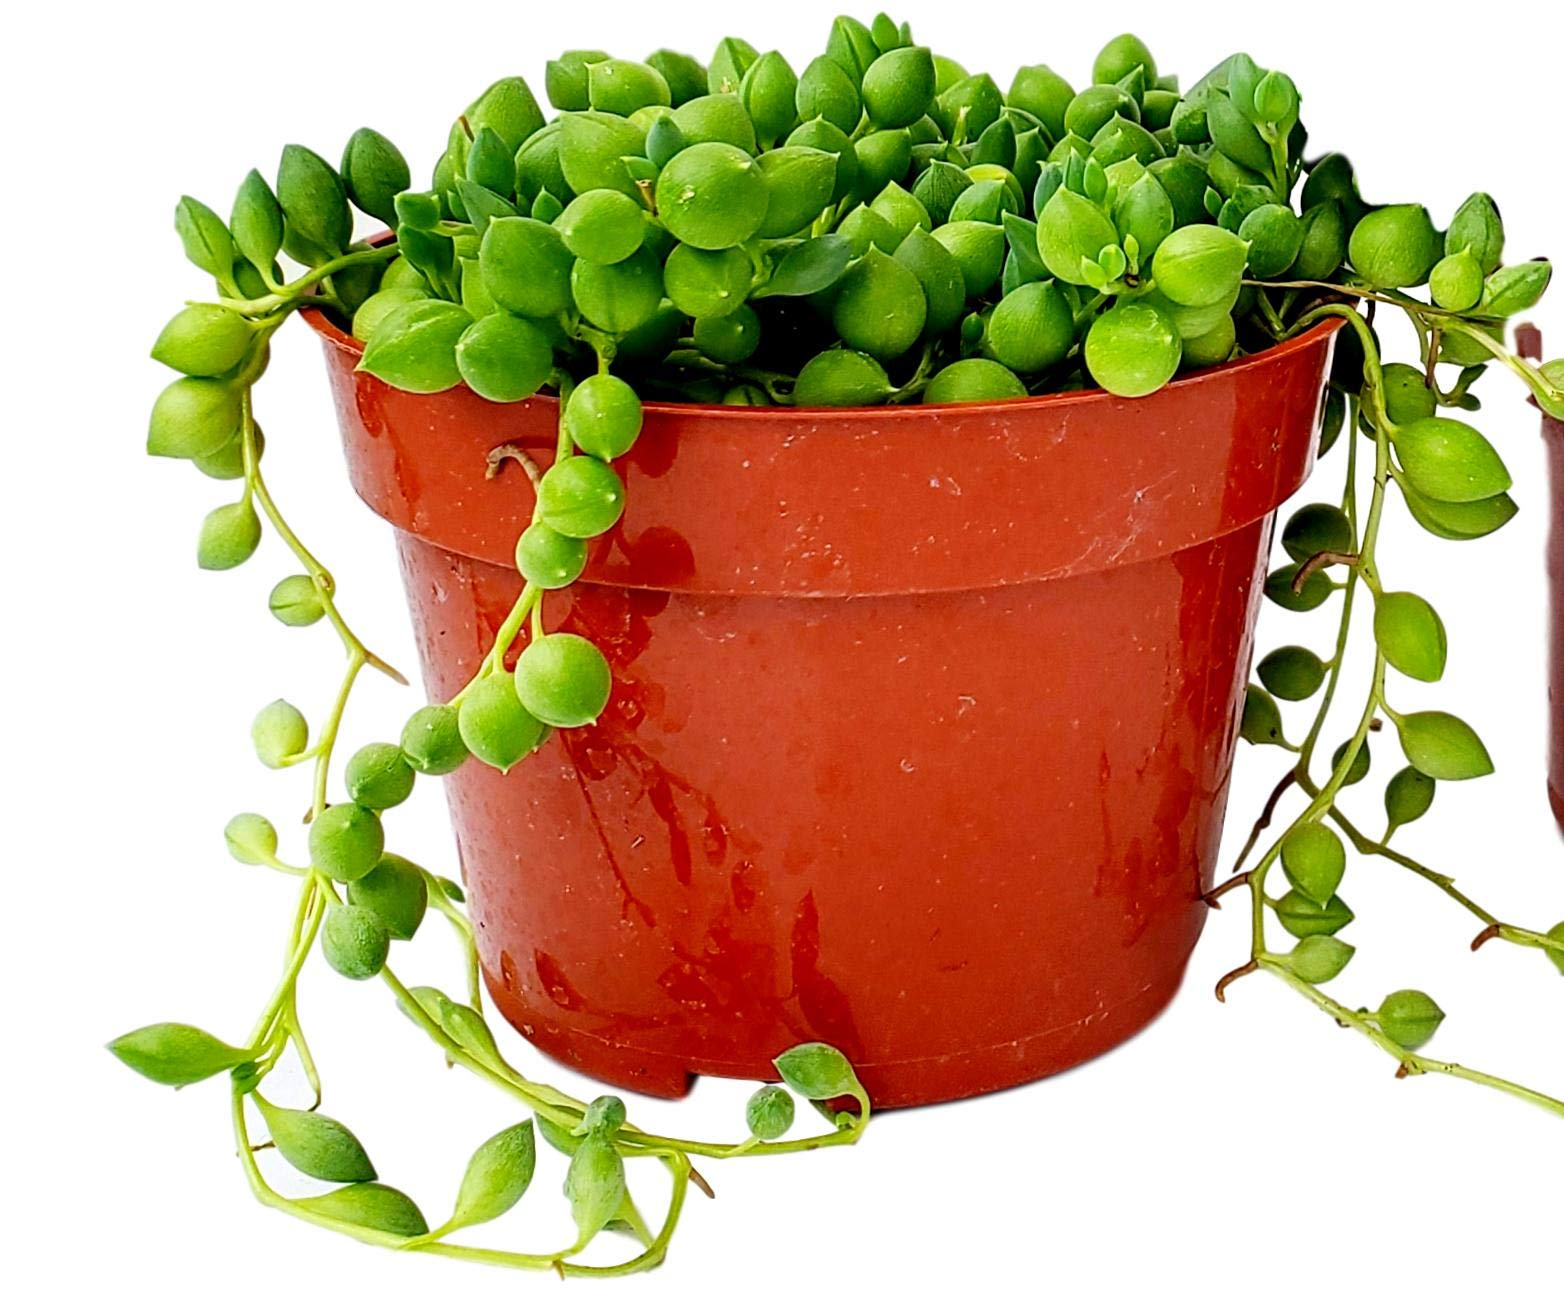 Fat Plants San Diego Succulent Plant(s) Fully Rooted in 4 inch Planter Pots with Soil - Real Live Potted Succulents/Unique Indoor Cactus Decor (1, String of Pearls) by Fat Plants San Diego